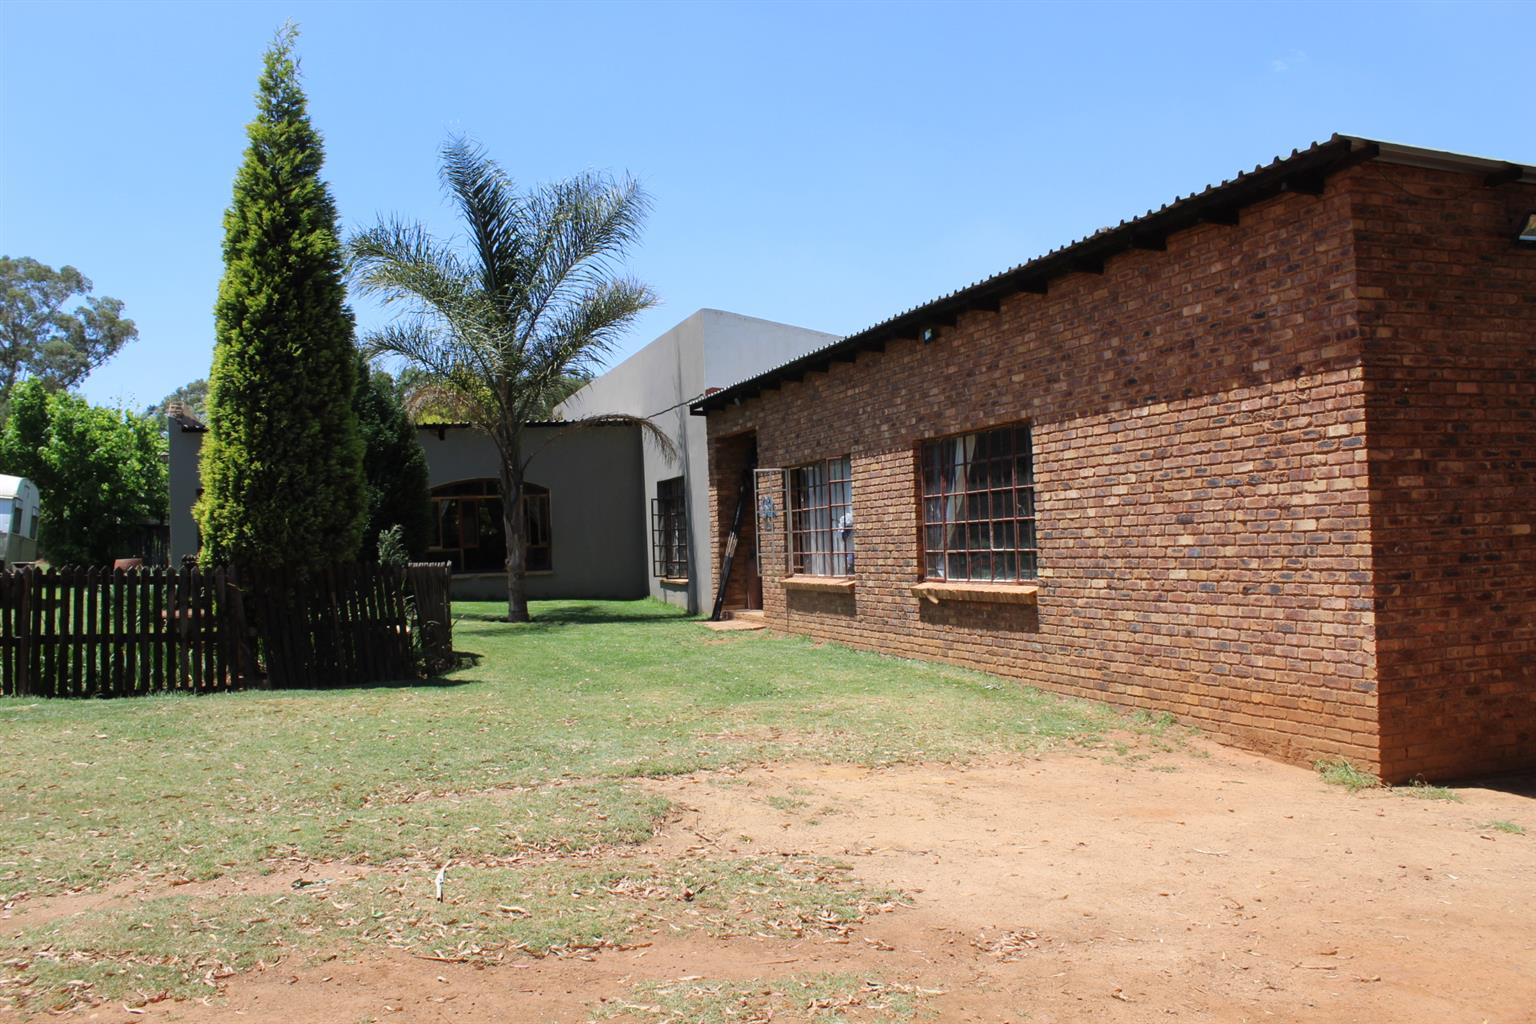 BAPSFONTEIN(NEST PARK)- 3Ha- 3 GOOD HOUSES-GOOD BOREHOLE-WORKSHOP 3 PHASE POWER-3 Mil NEG......